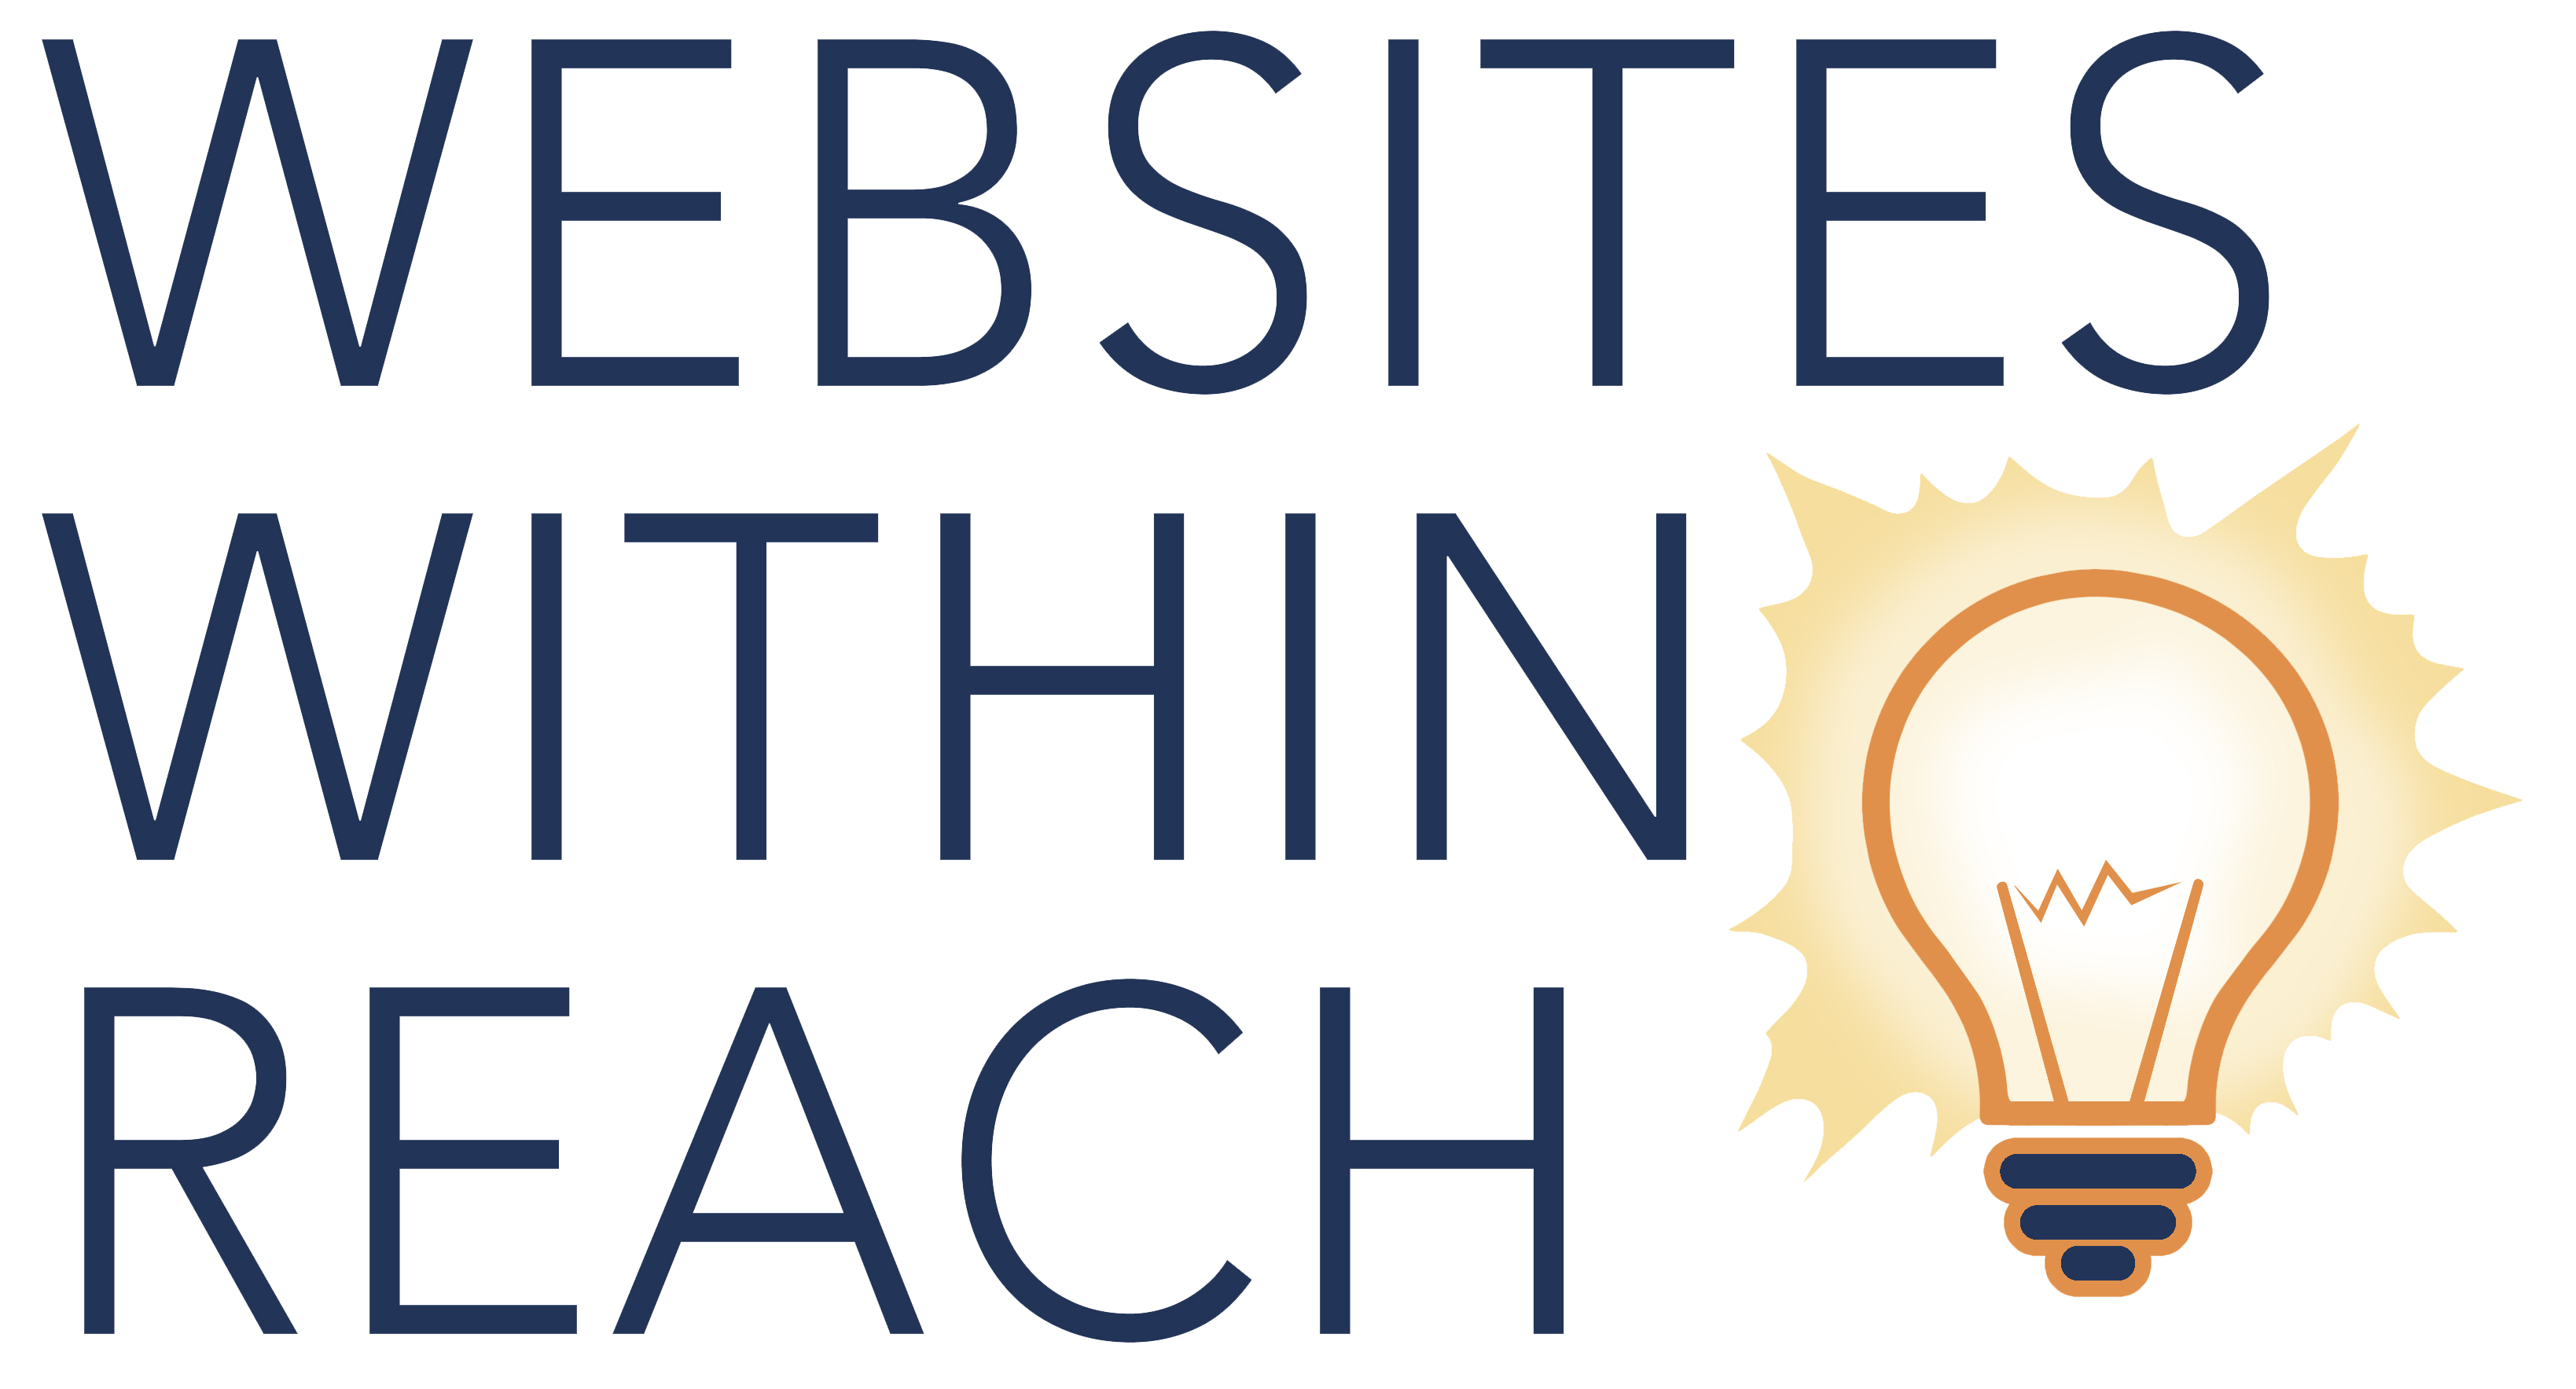 Websites Within Reach